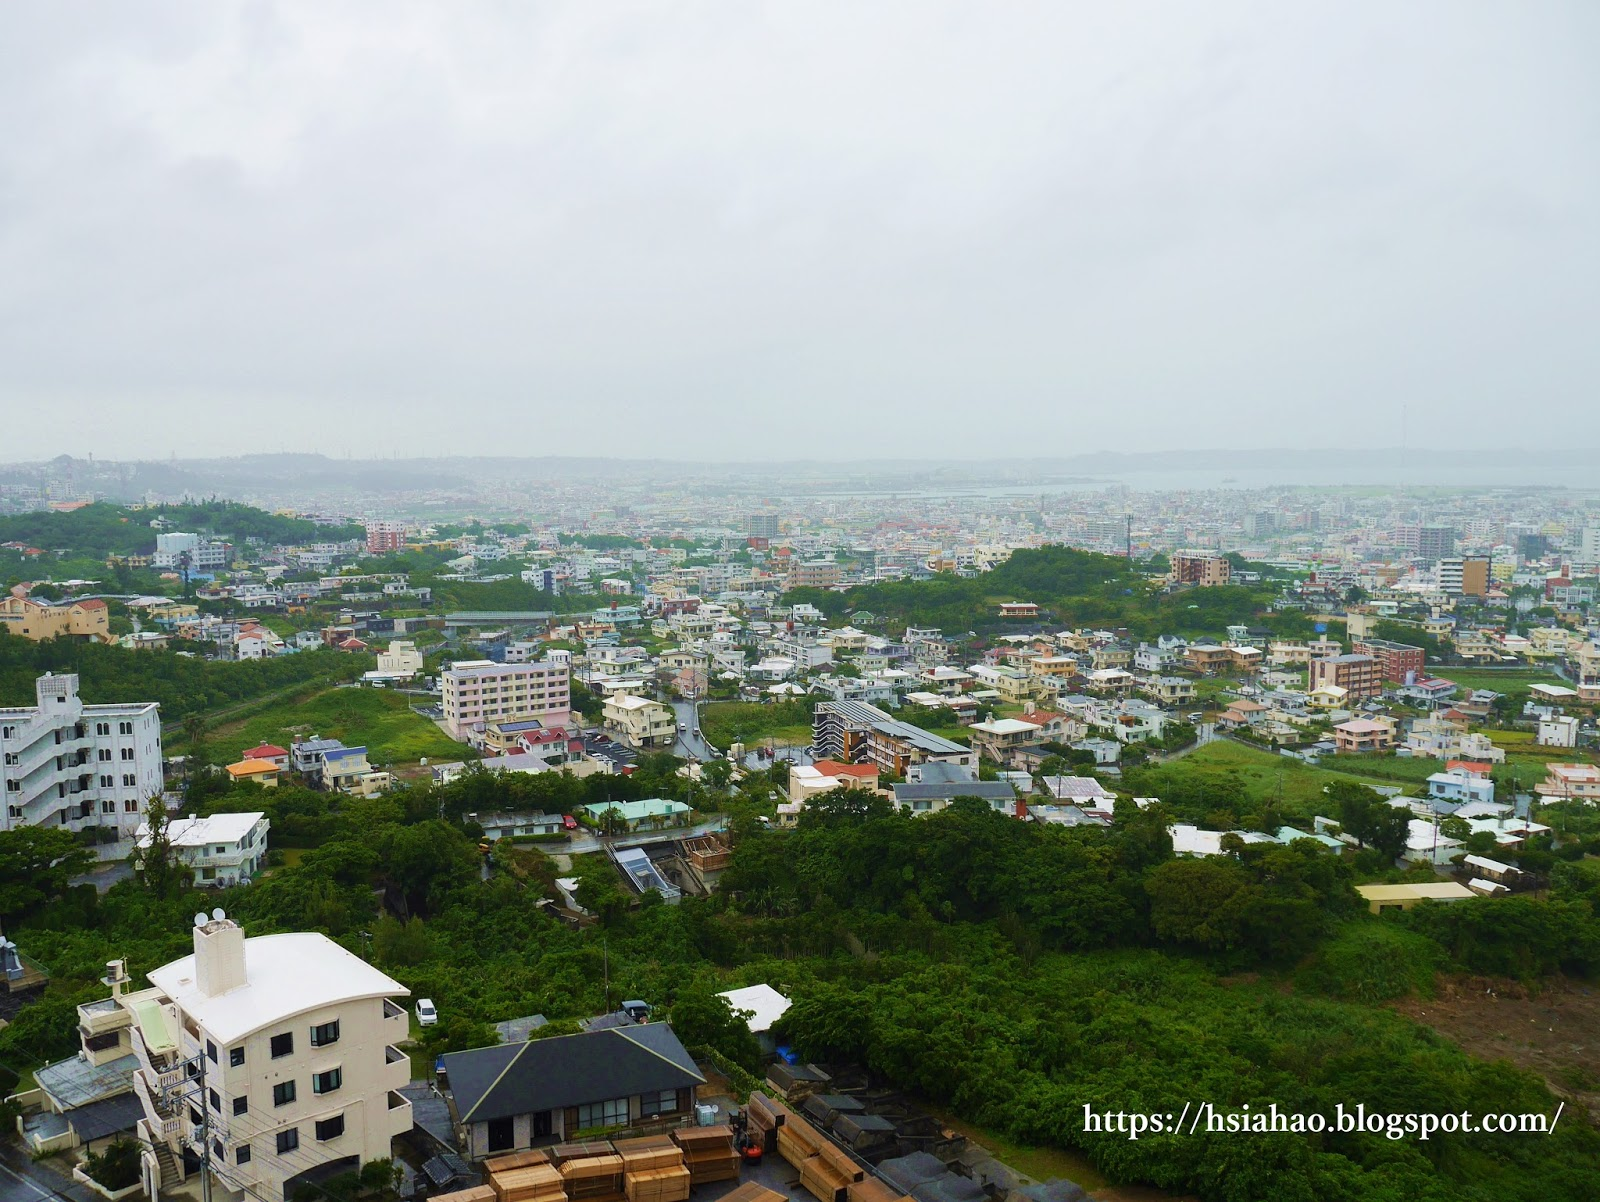 沖繩-住宿-推薦-Okinawa-Grand-Mer-Resort-hotel-自由行-旅遊-Okinawa